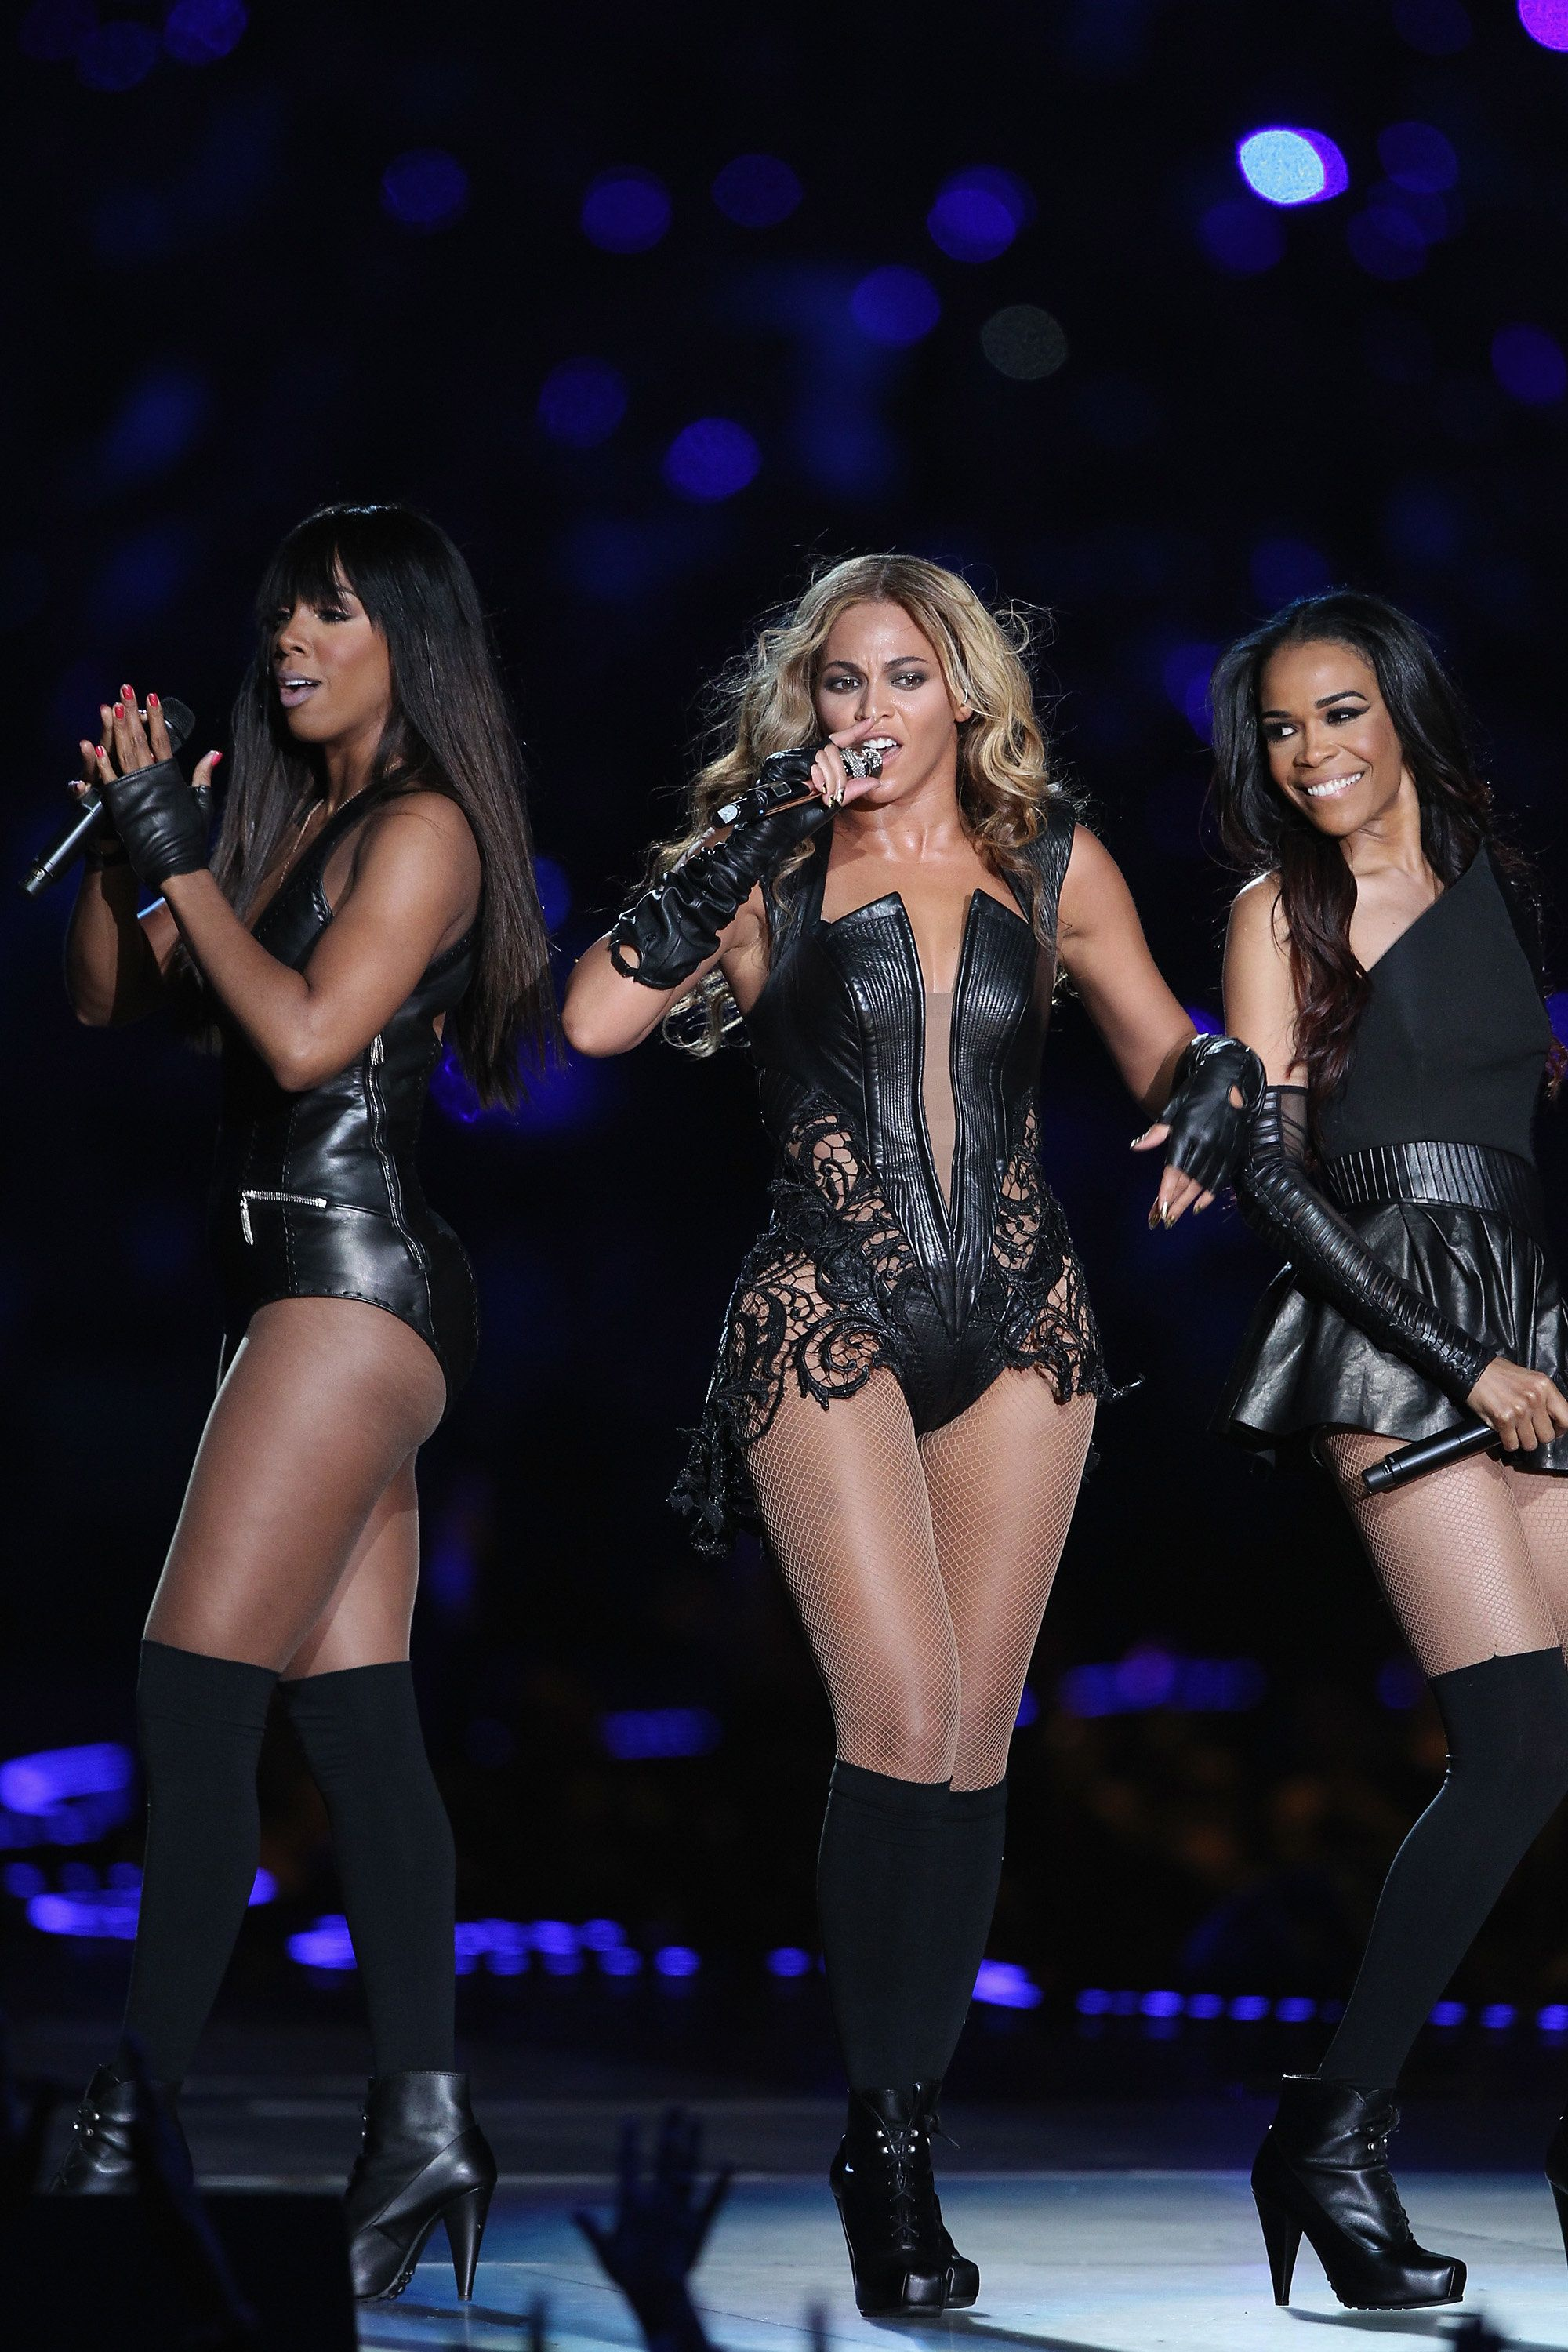 NEW ORLEANS, LA - FEBRUARY 03:  Destiny's Child Reunites to perform when Beyonce performs during the Pepsi Super Bowl XLVII Halftime Show at Mercedes-Benz Superdome on February 3, 2013 in New Orleans, Louisiana. (l to r:   Kelliy Rowland; Beyonce; Michelle Williams,)  (Photo by Al Pereira/WireImage)